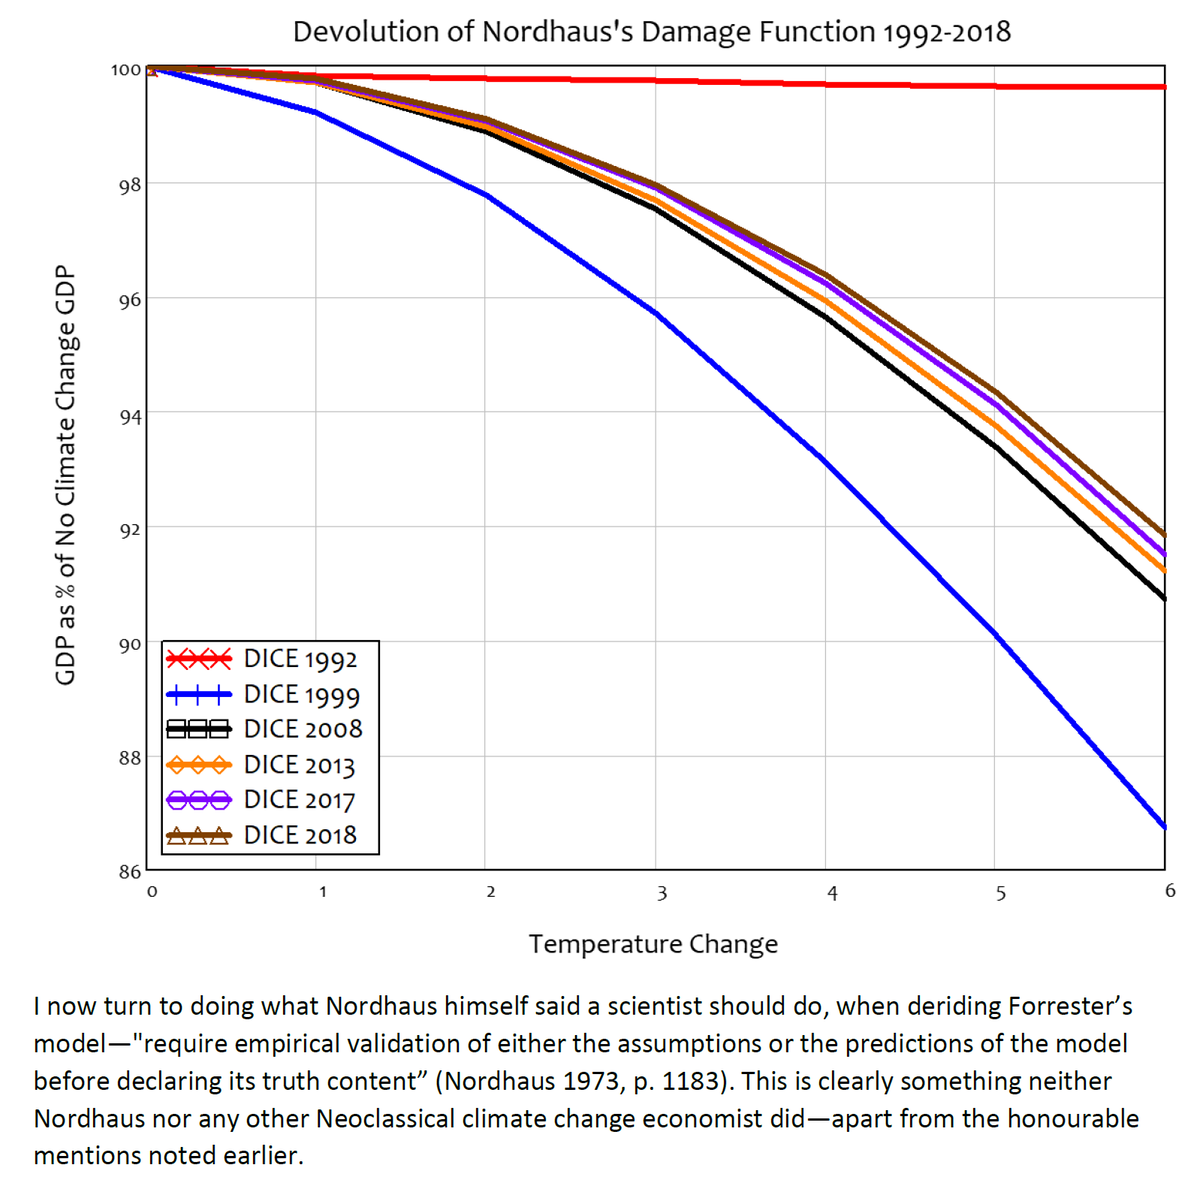 25/44 7. How Low Can You Go?And that's not it. Nordhaus has consistently lowered the parameters in his damage function (called DICE) to reduce his already trivial predictions of the damage to GDP from climate change.